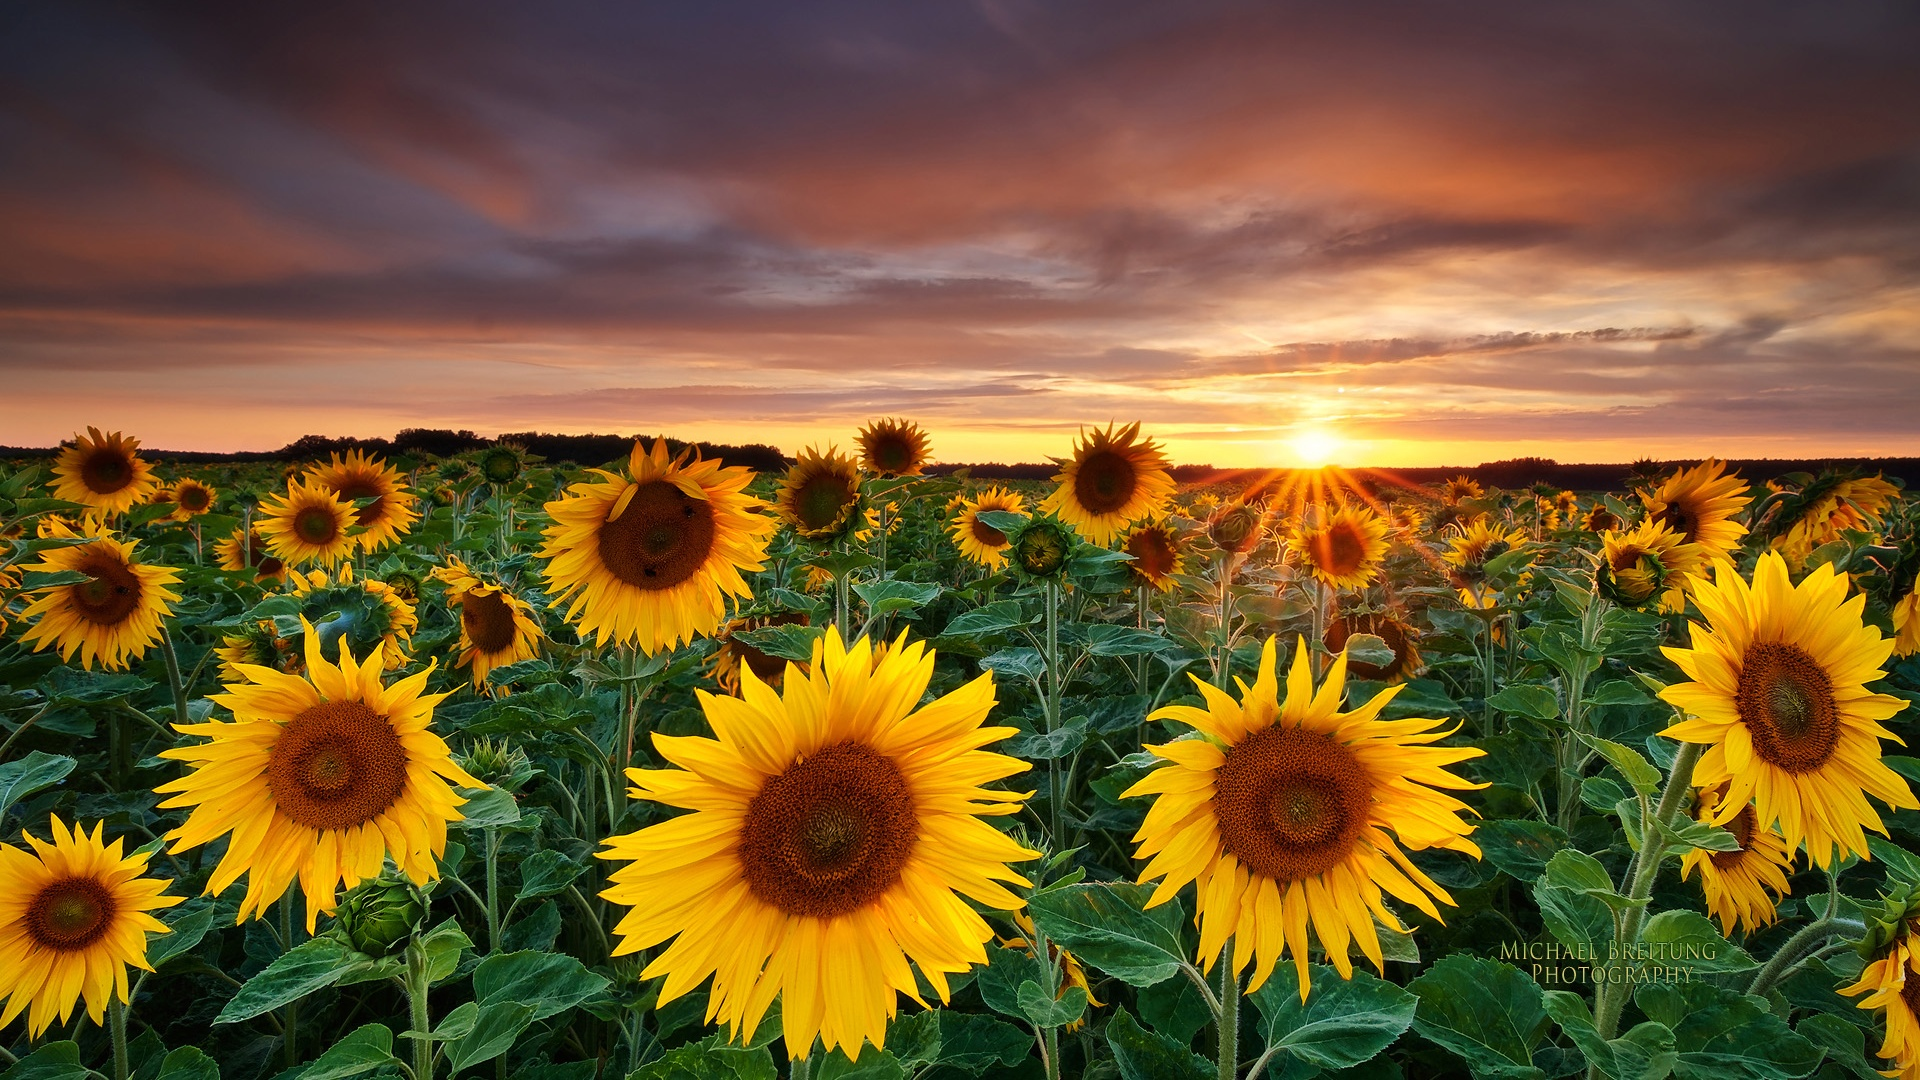 cloudy weather sunflower image